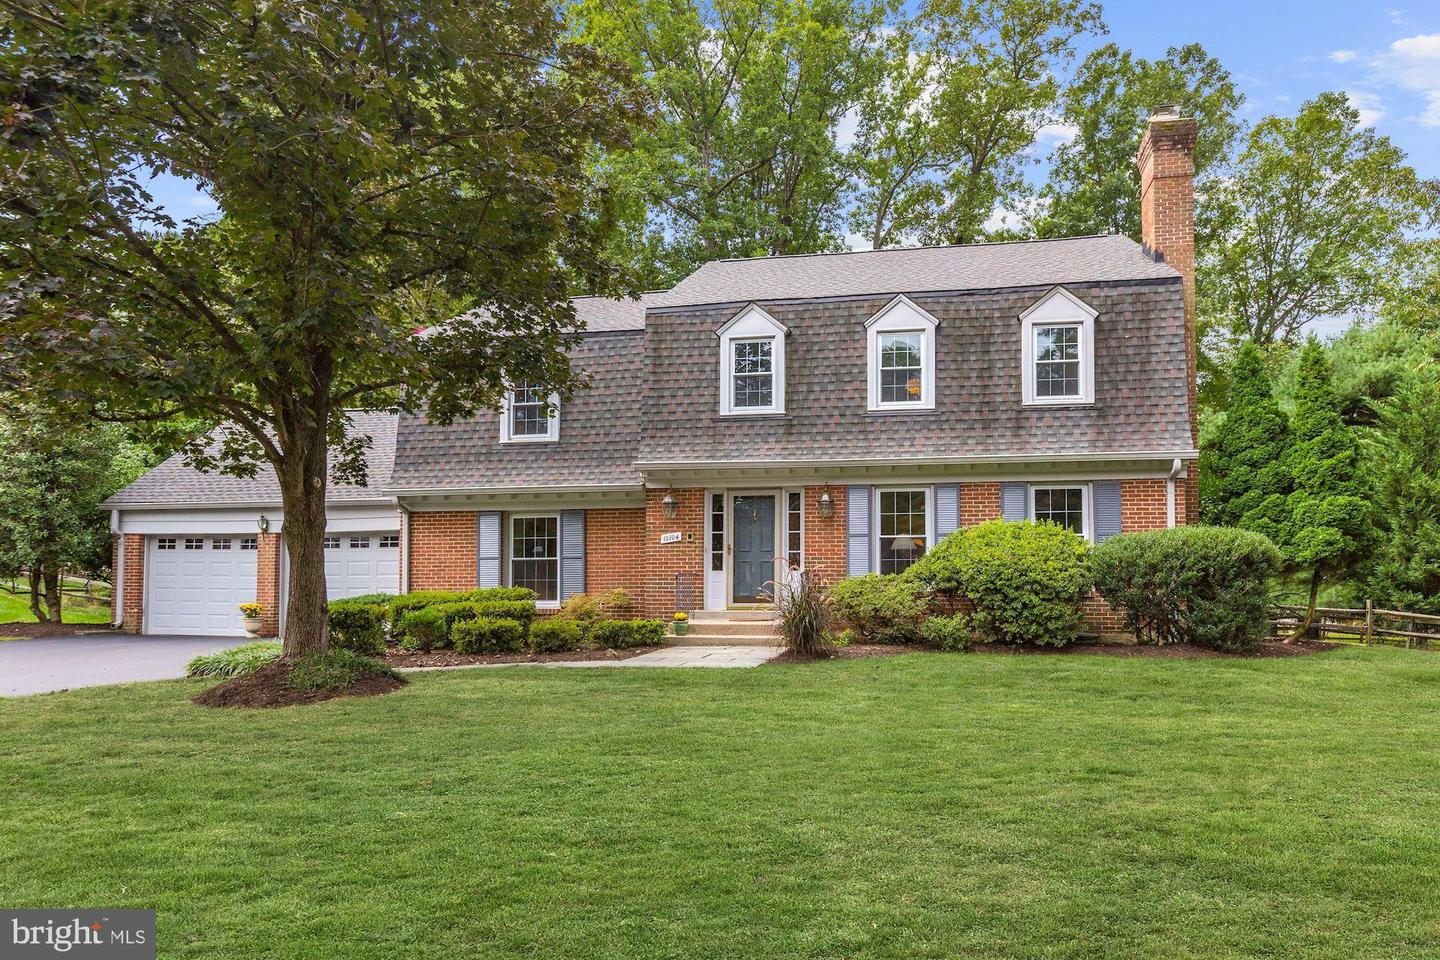 10104 DONEGAL COURT, POTOMAC, Maryland